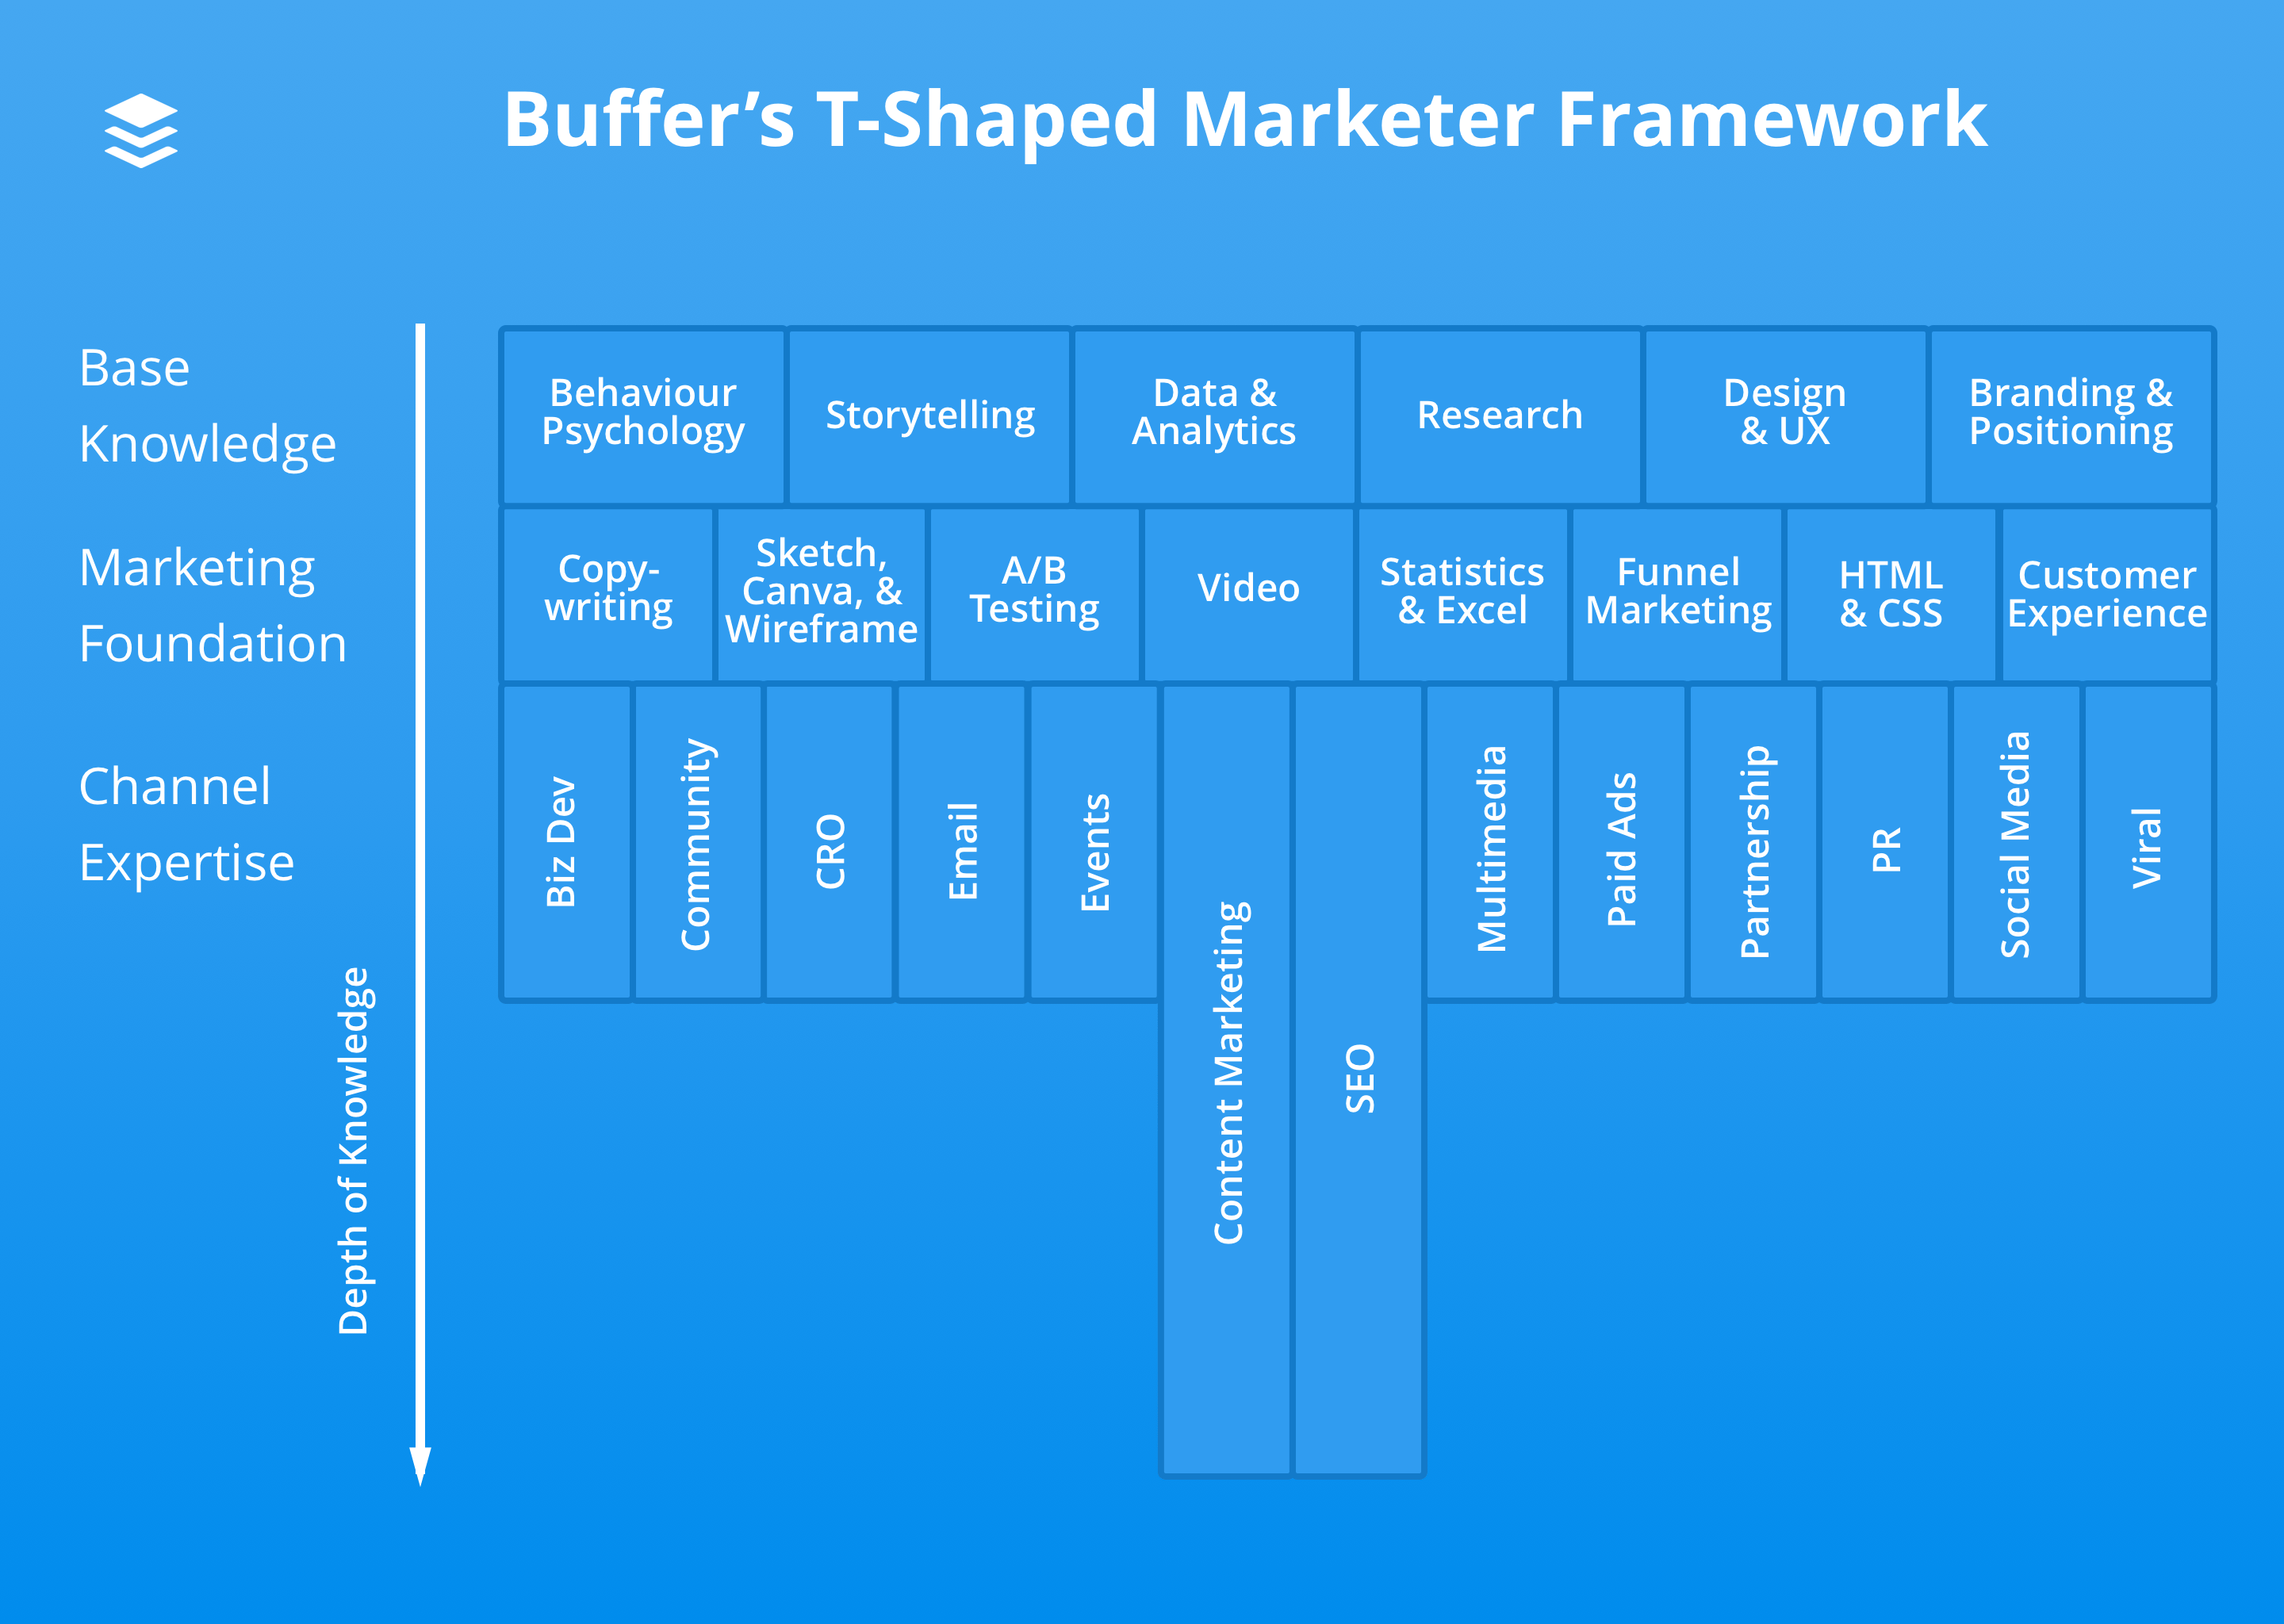 Buffer T-shaped marketer diagram